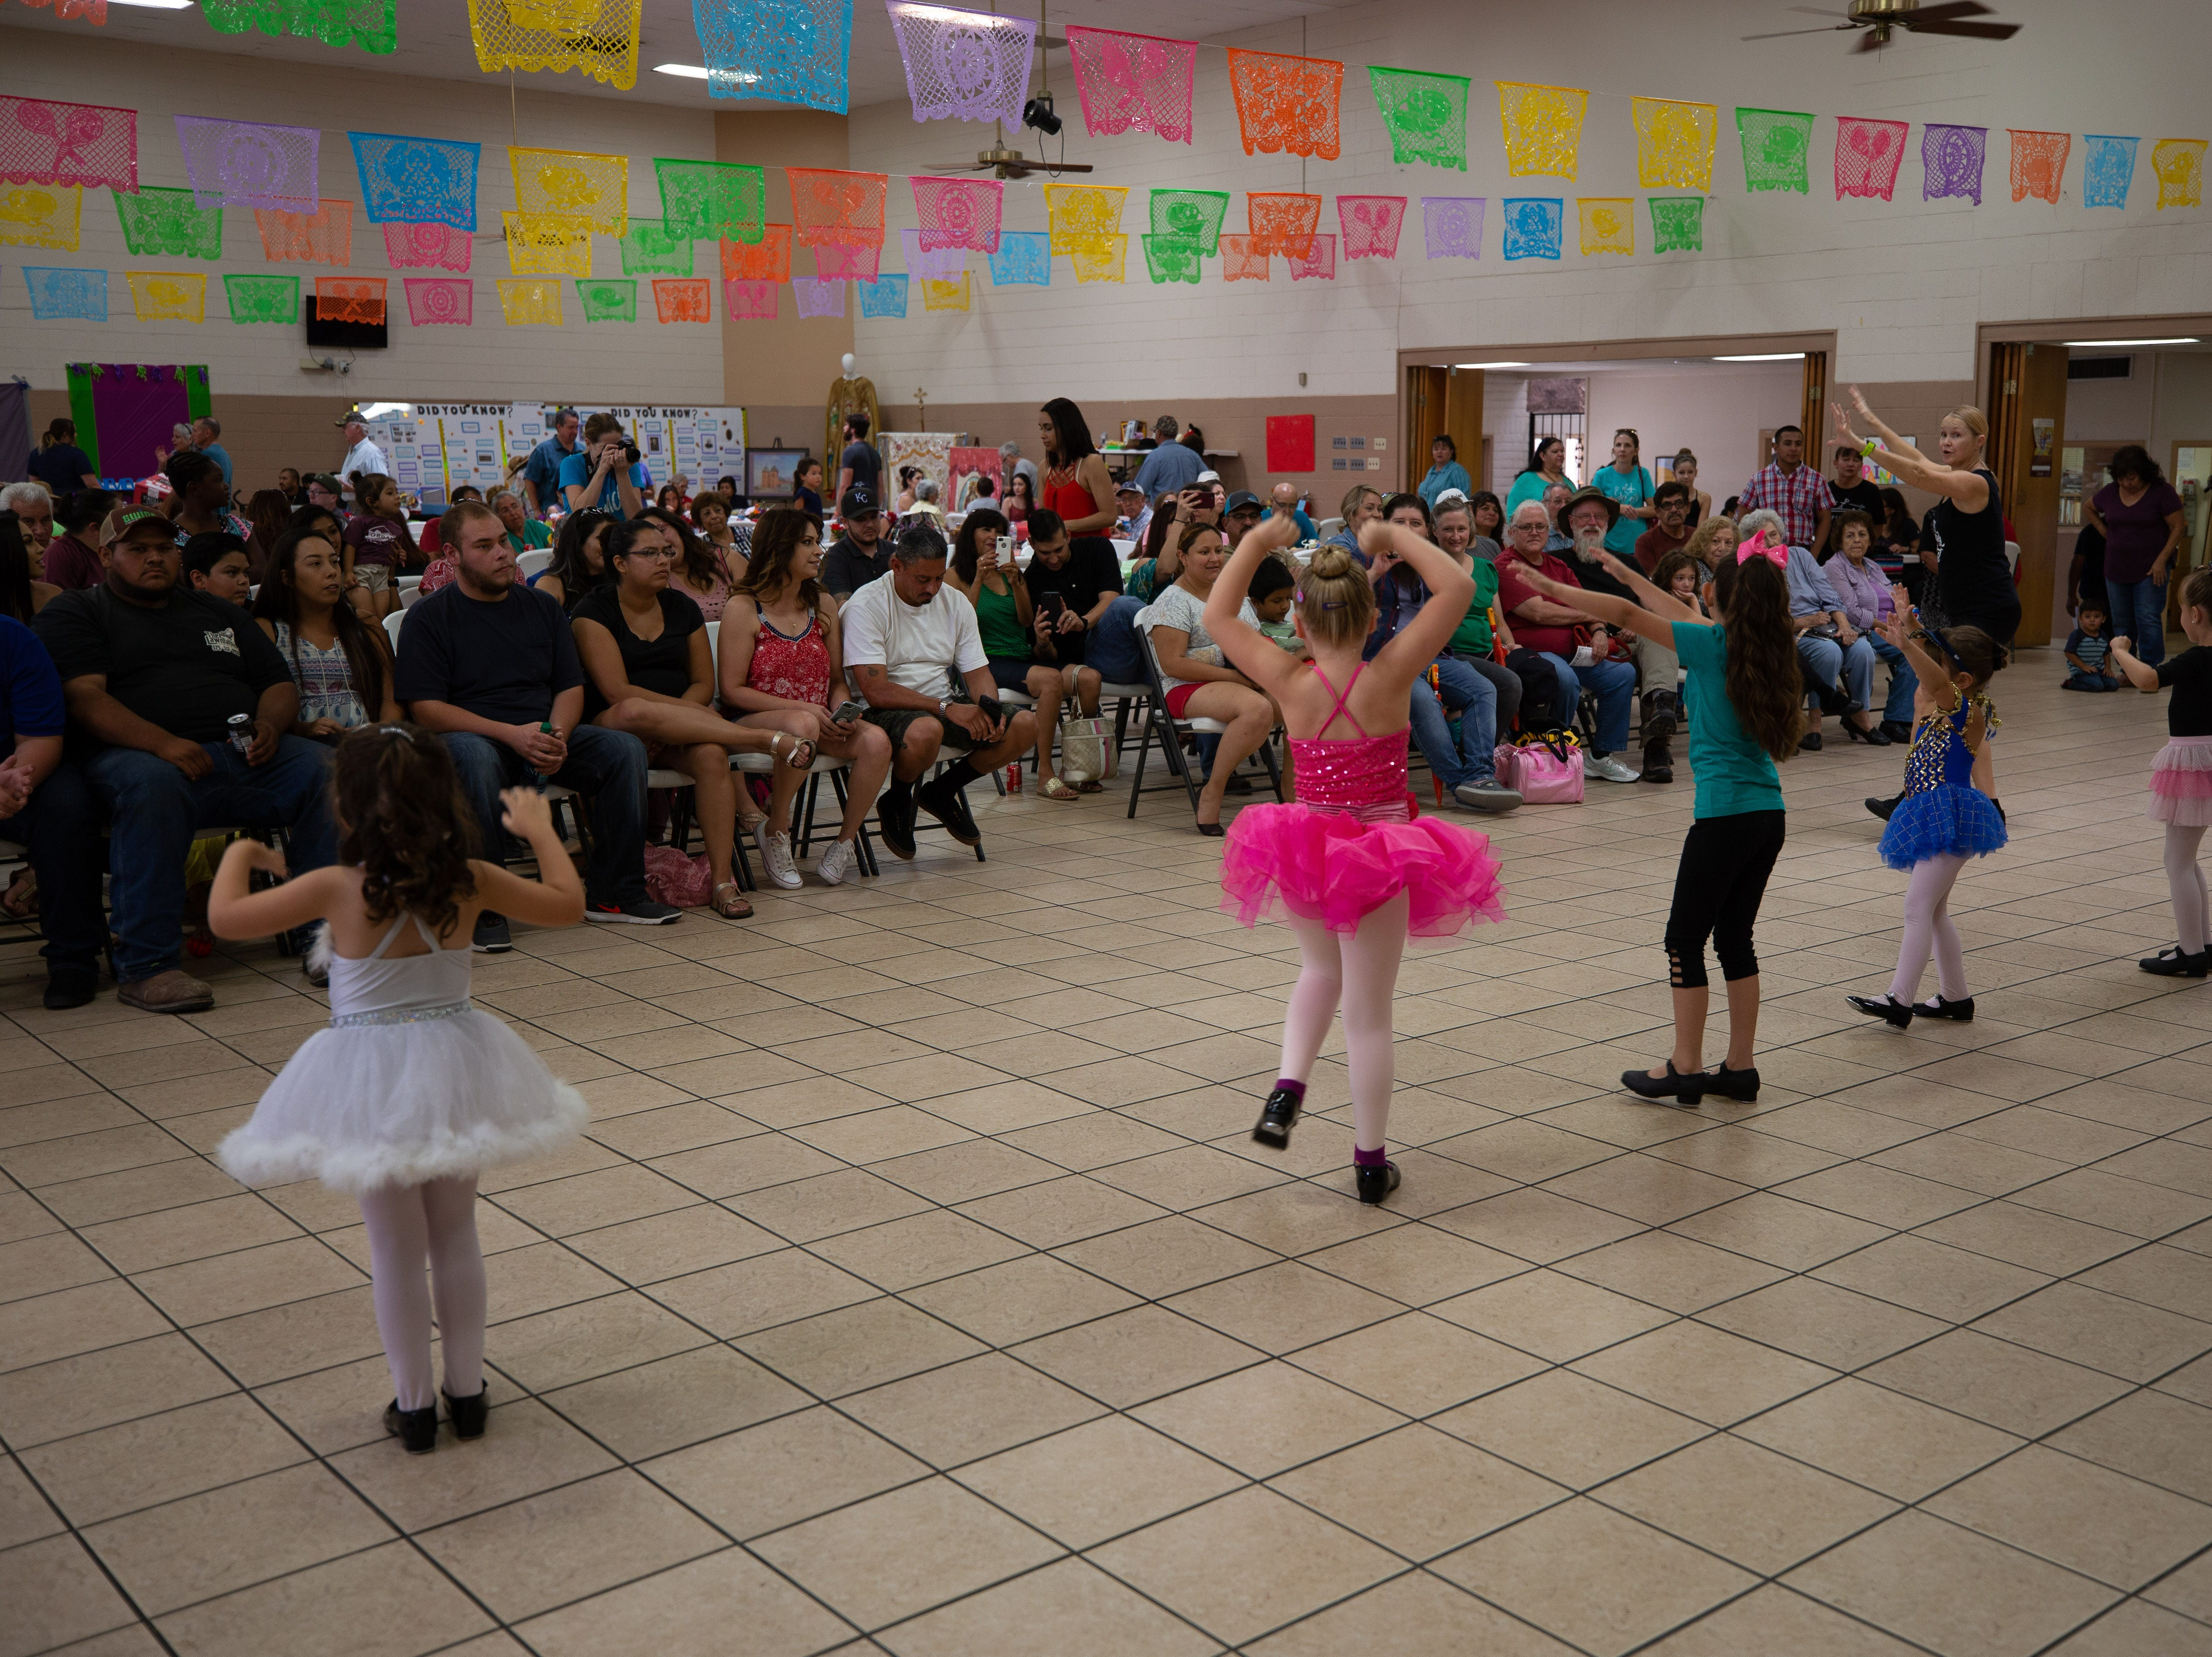 Michelle's Dance Academy instructor Charlie Ann Manning models for the young 3- to 6-year-old dancers as they entertain fiesta-goers at the St. Genevieve Fiesta on Saturday, Sept. 8, 2018.